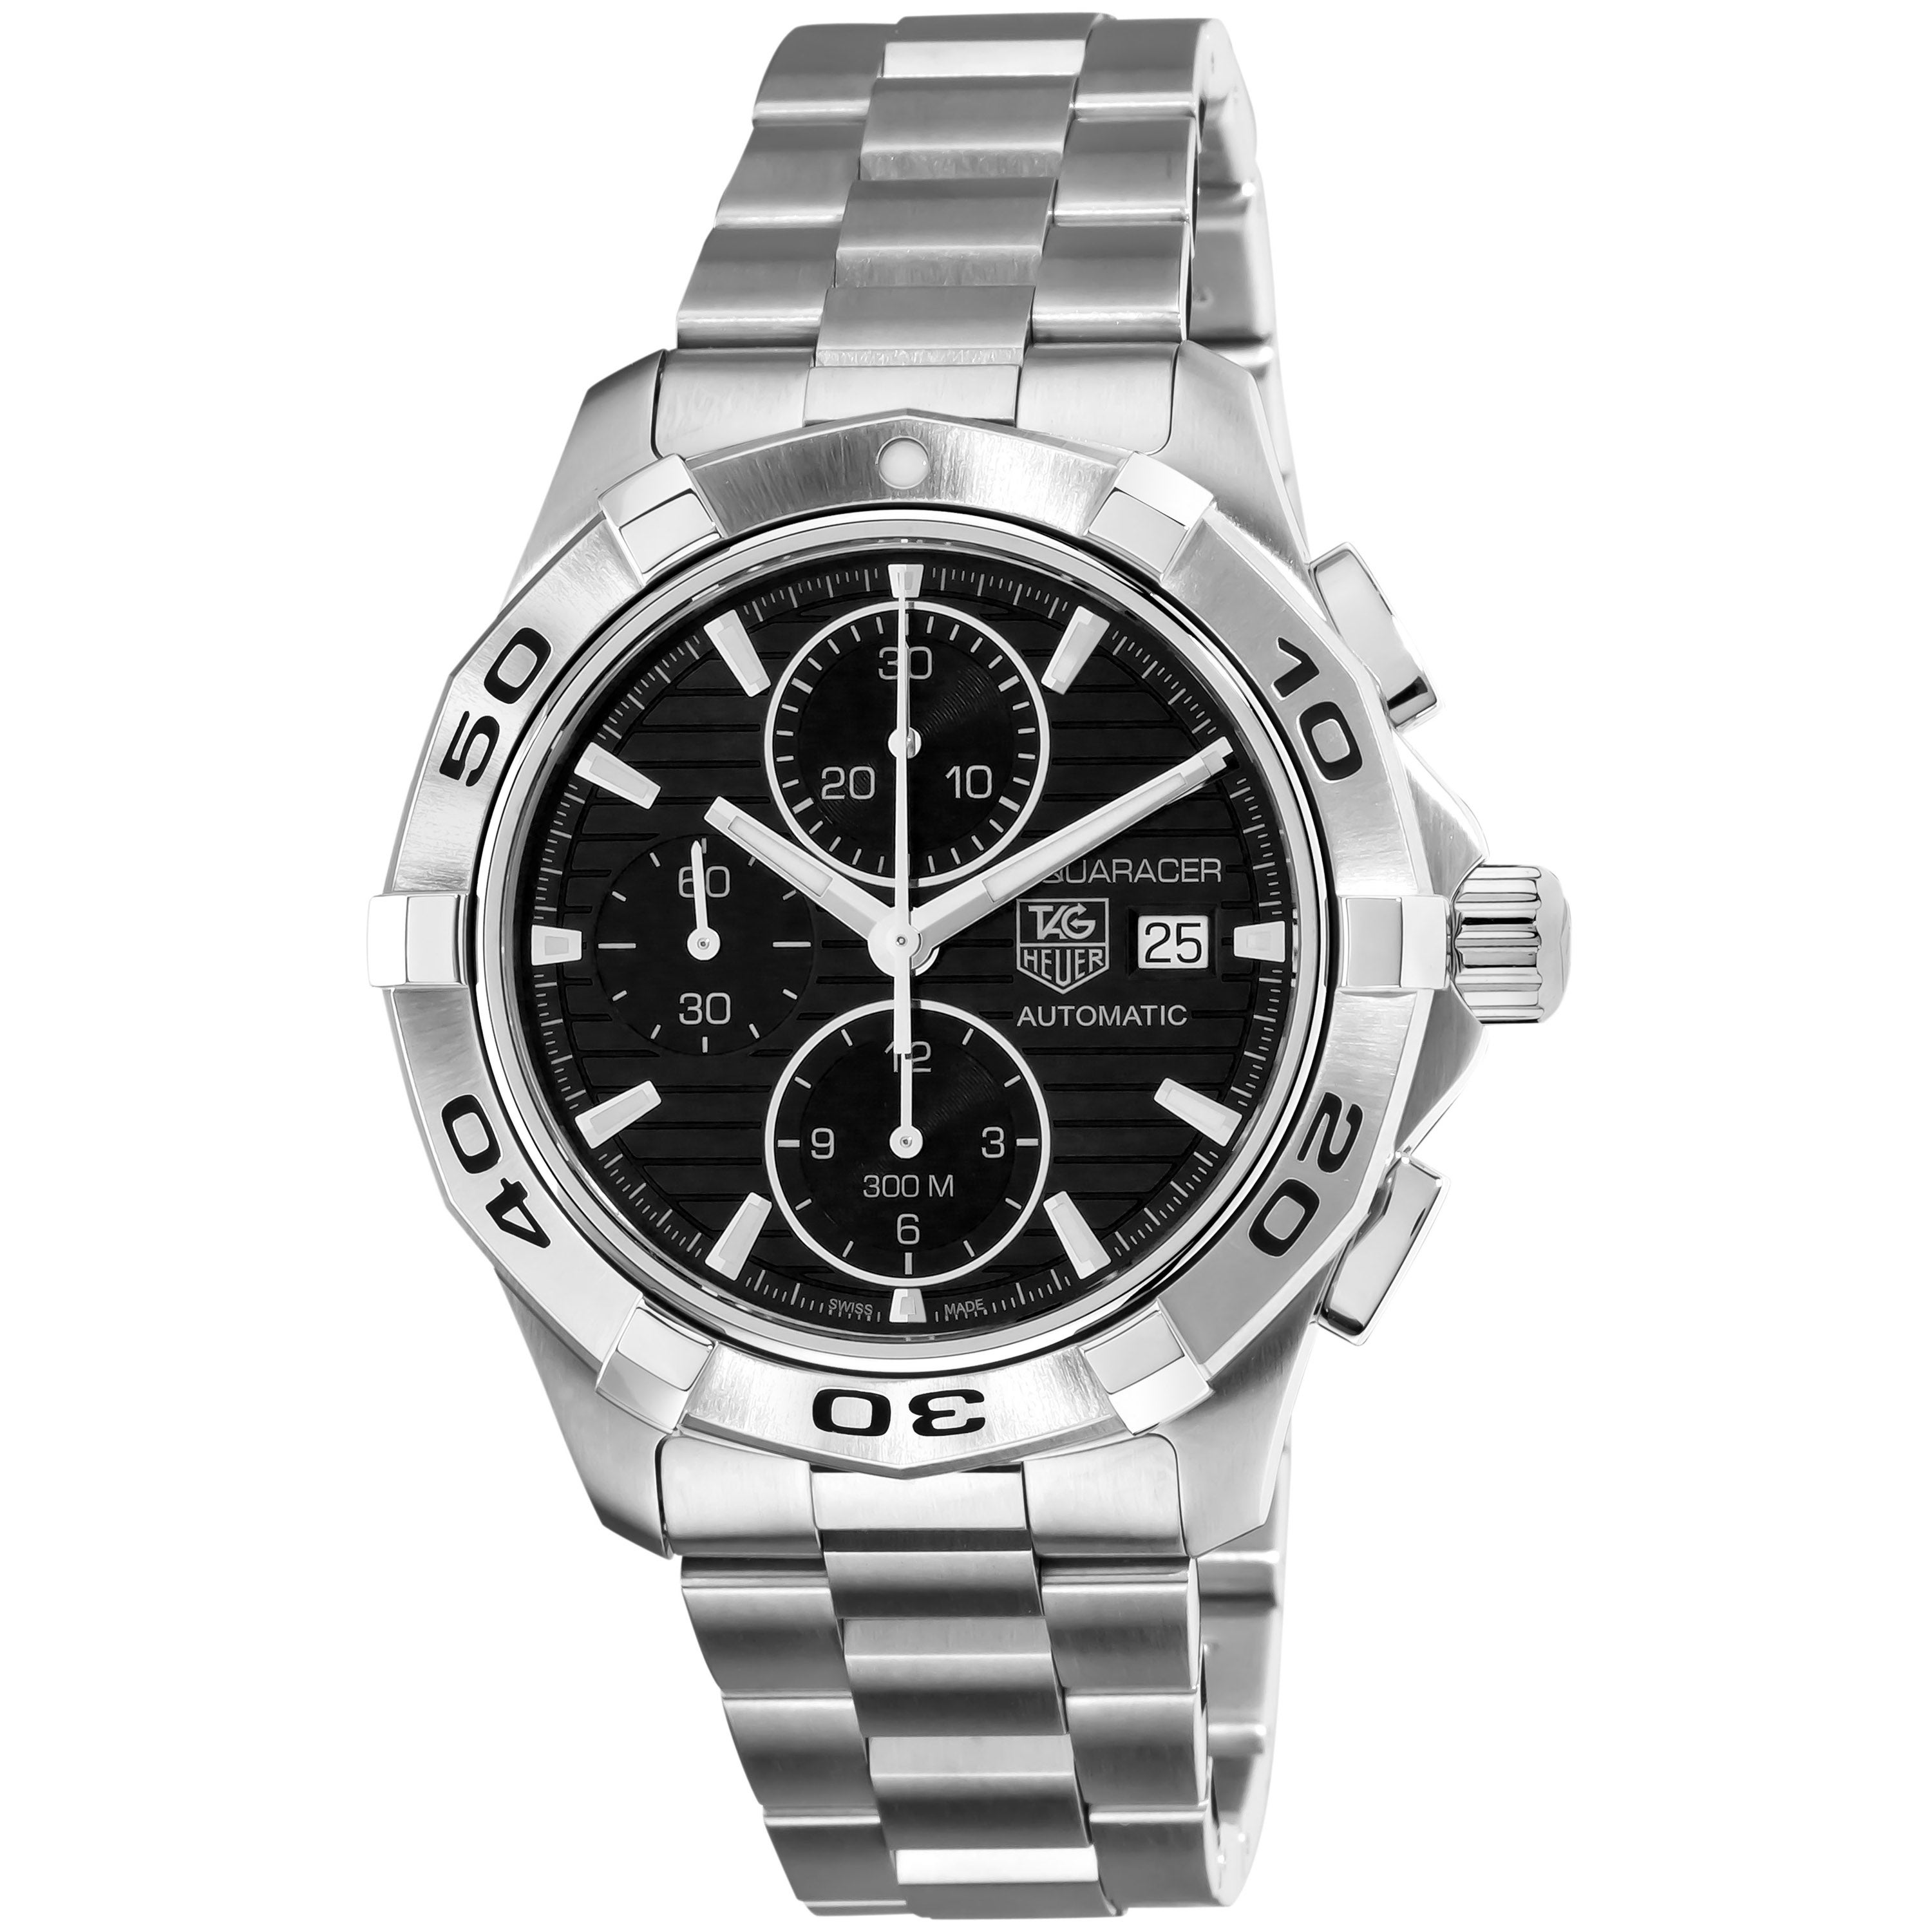 ed3cfa753 Shop Tag Heuer Men's 'Aquaracer' Steel Automatic Chronograph Watch - Free  Shipping Today - Overstock - 7262815